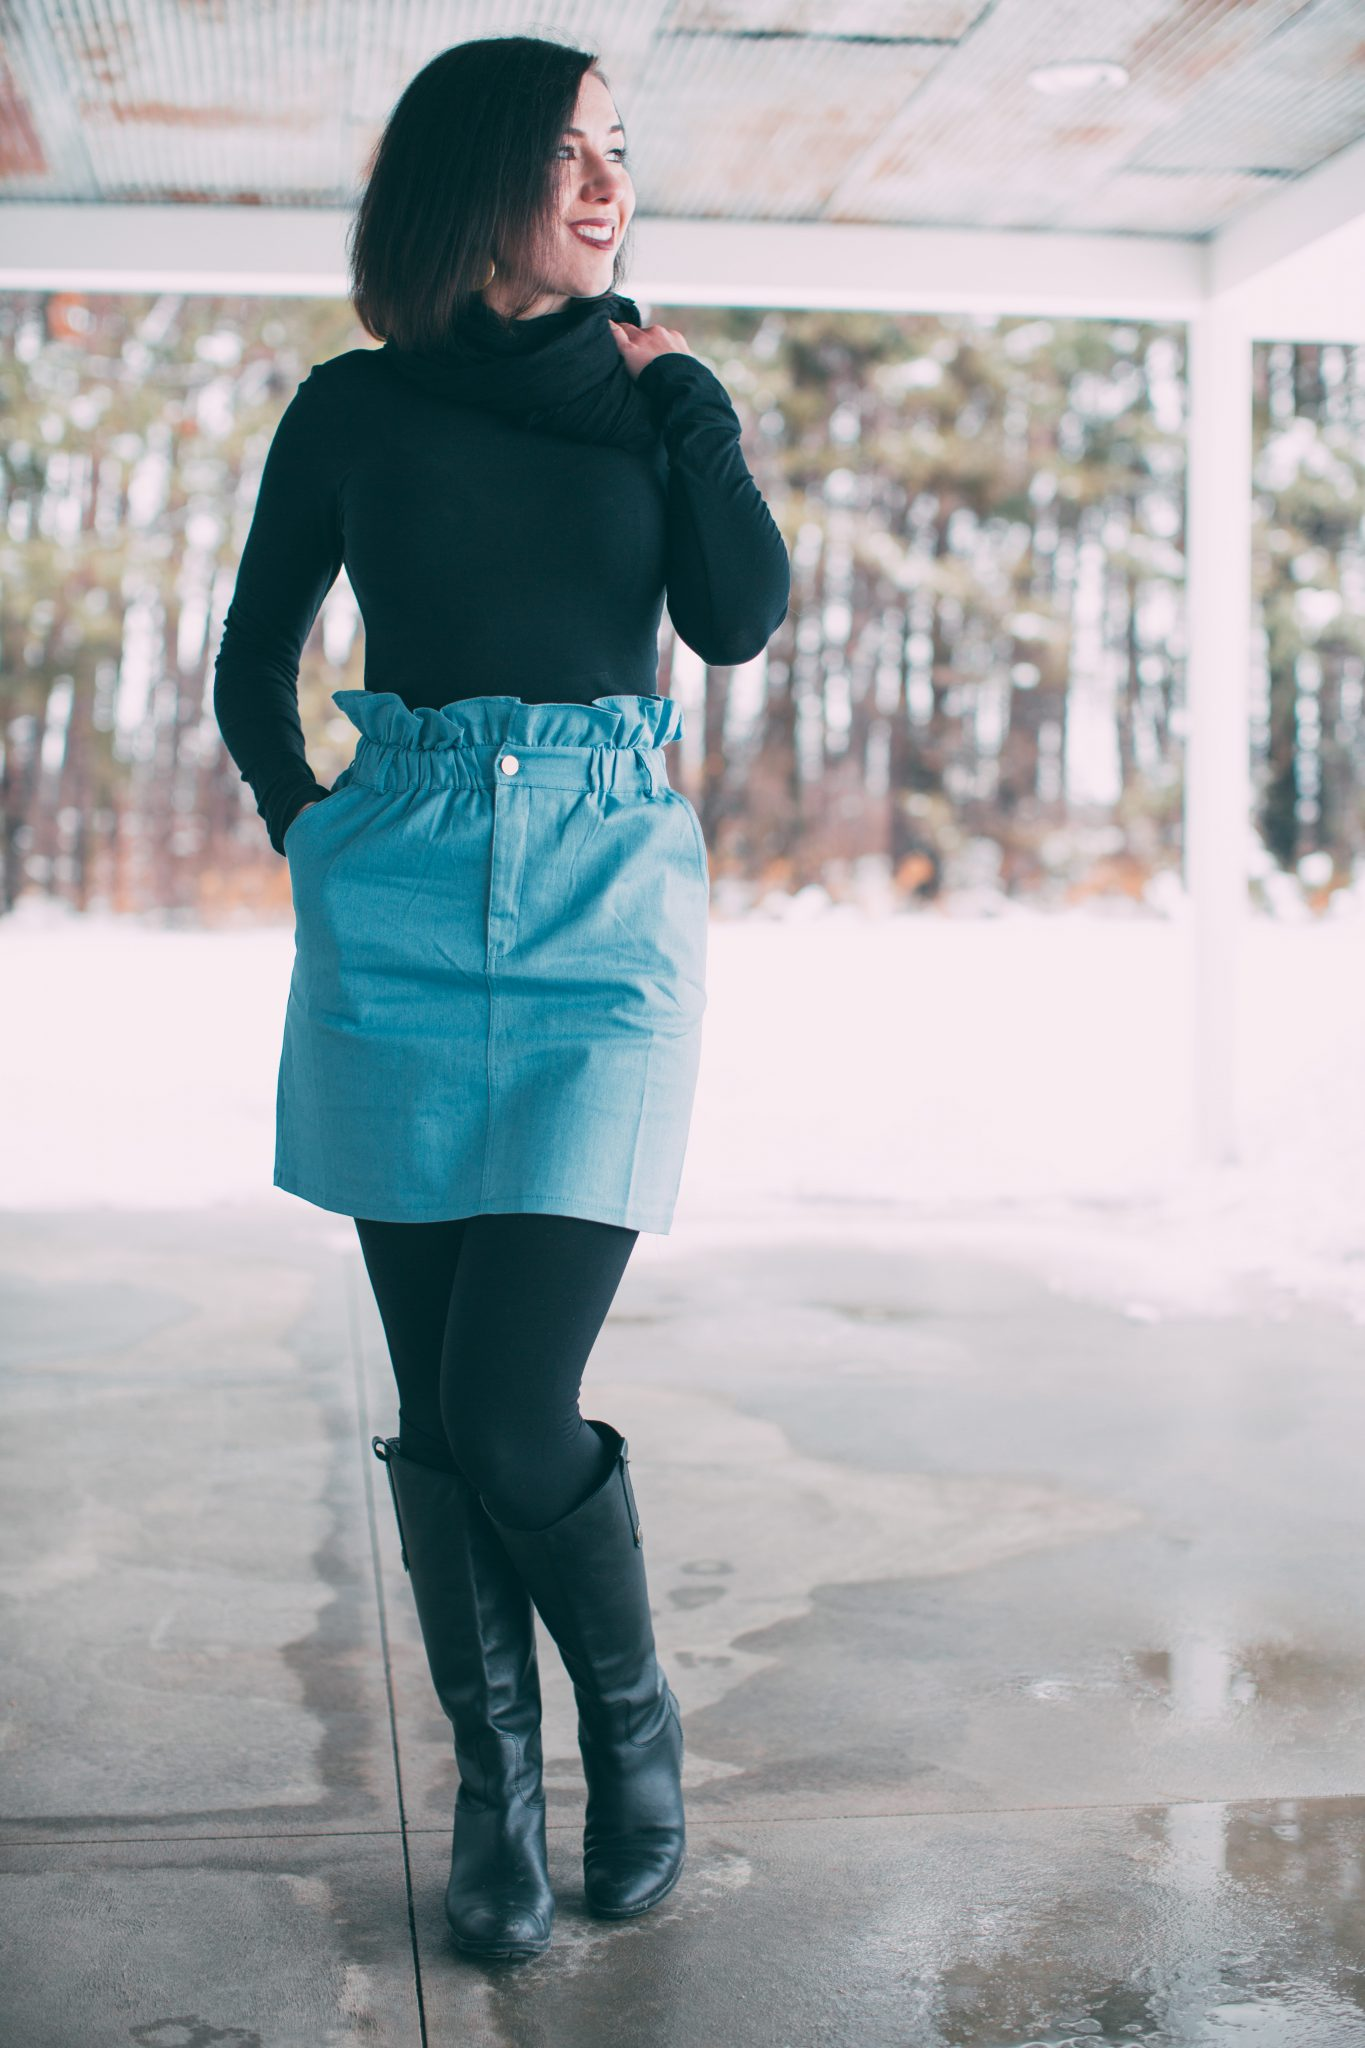 Denim skirt styled for winter